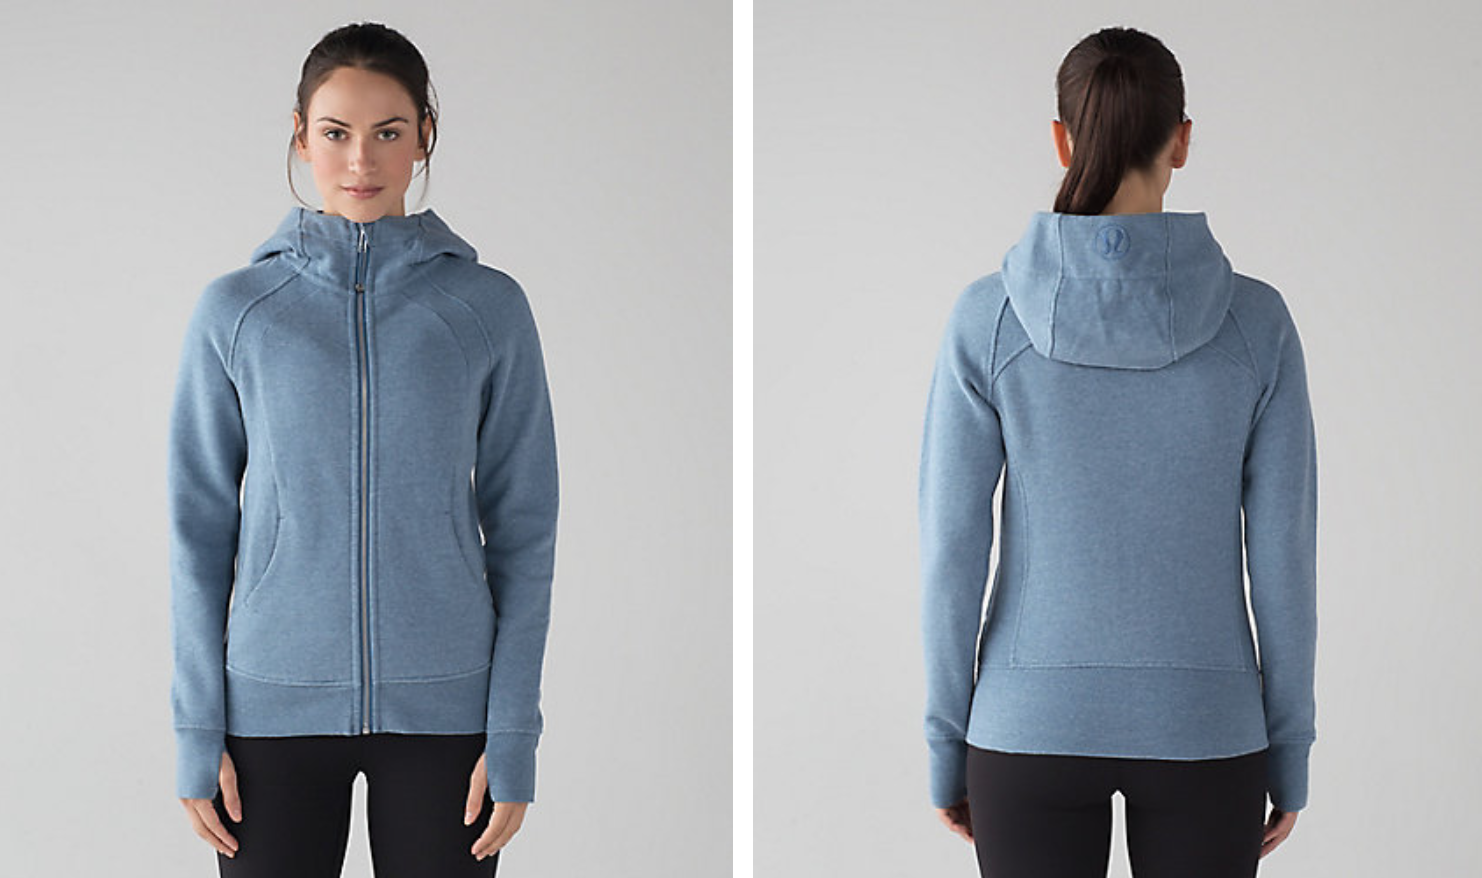 https://api.shopstyle.com/action/apiVisitRetailer?url=https%3A%2F%2Fshop.lululemon.com%2Fp%2Fjackets-and-hoodies-jackets%2FScuba-Hoodie-IV%2F_%2Fprod8351383%3Frcnt%3D8%26N%3D1z13ziiZ7z5%26cnt%3D58%26color%3DLW4AFPS_029038&site=www.shopstyle.ca&pid=uid6784-25288972-7